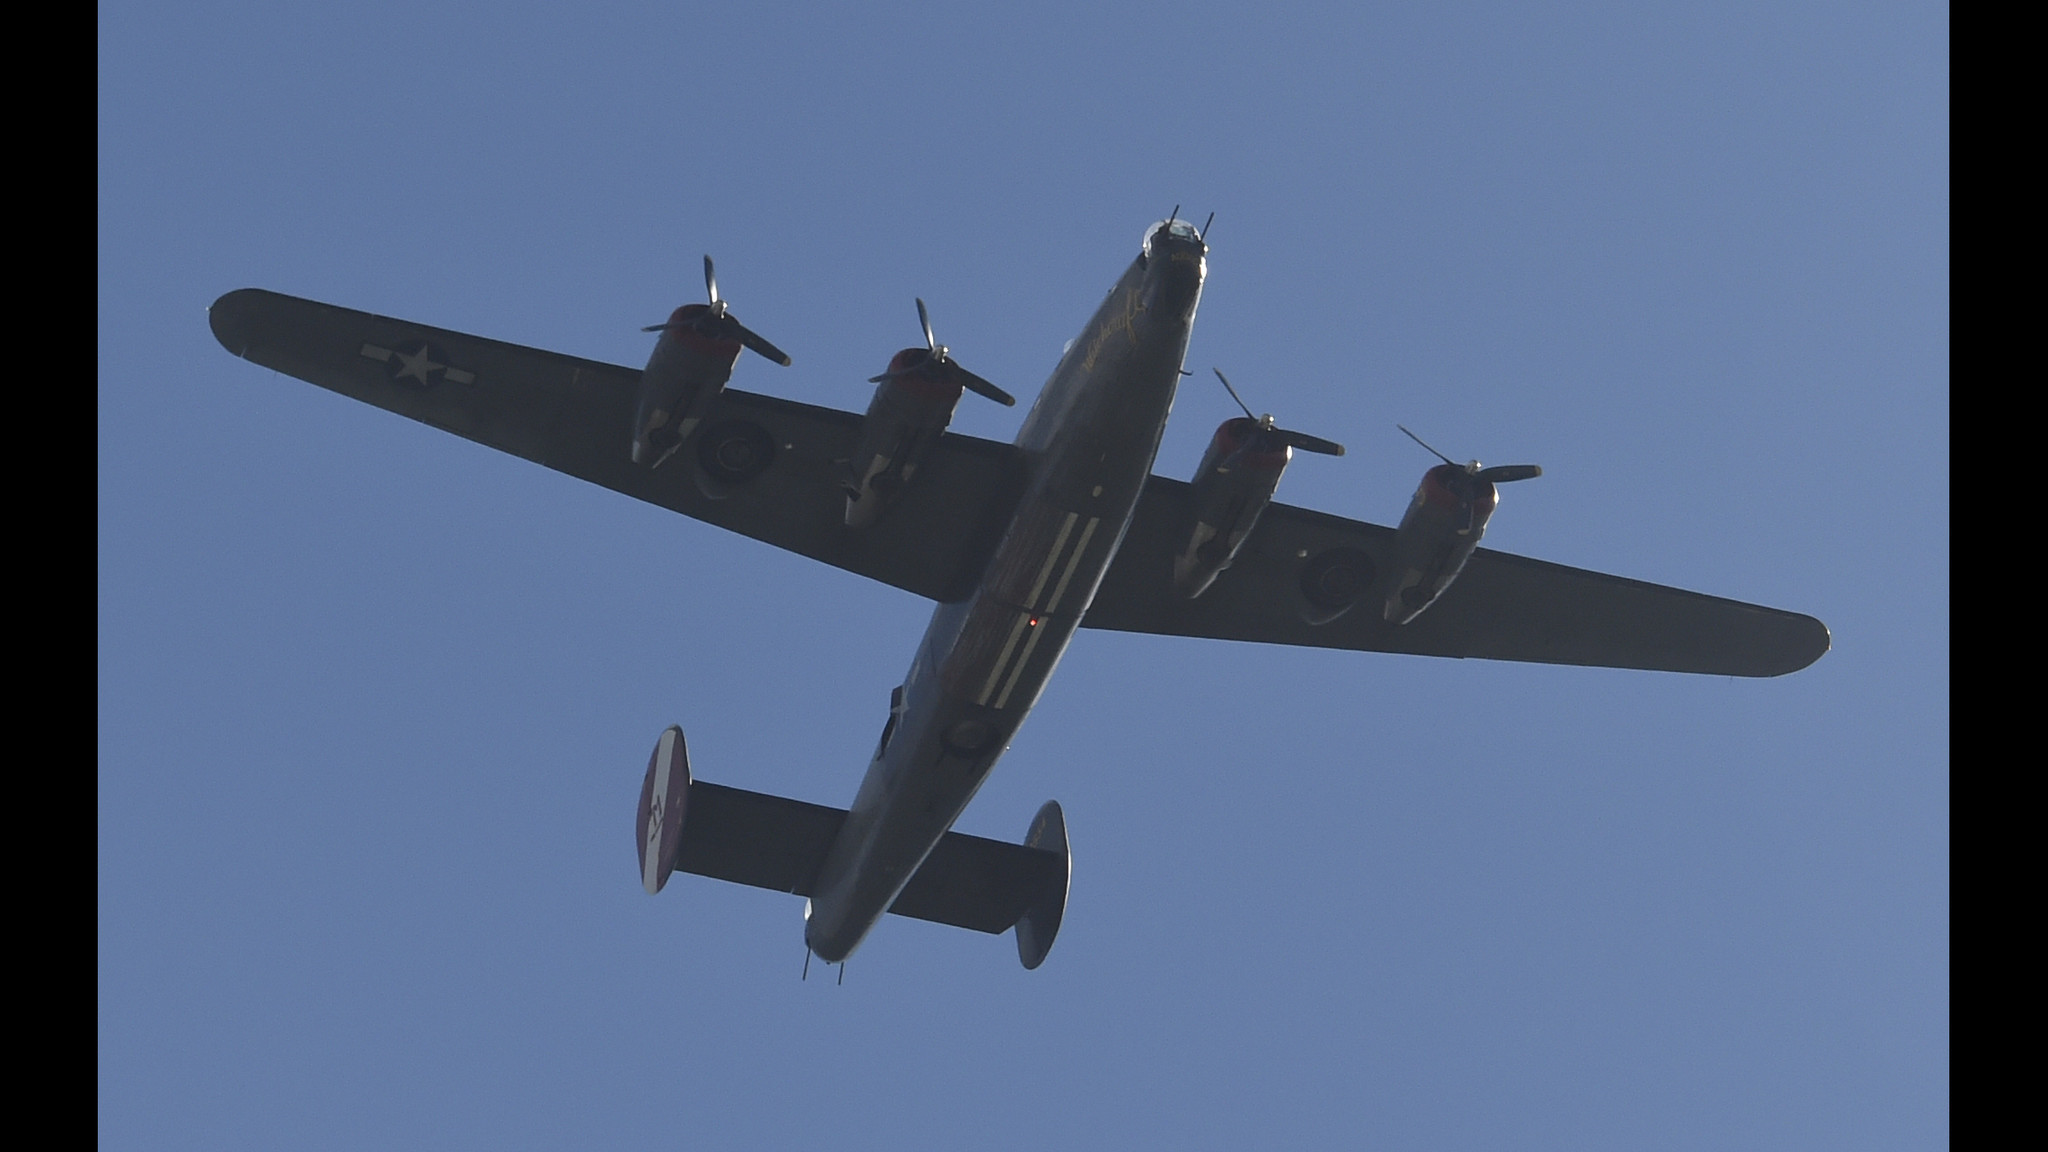 Wings Of Freedom Tour 2020.World War Ii Era Bomber That Crashed In Connecticut Was To